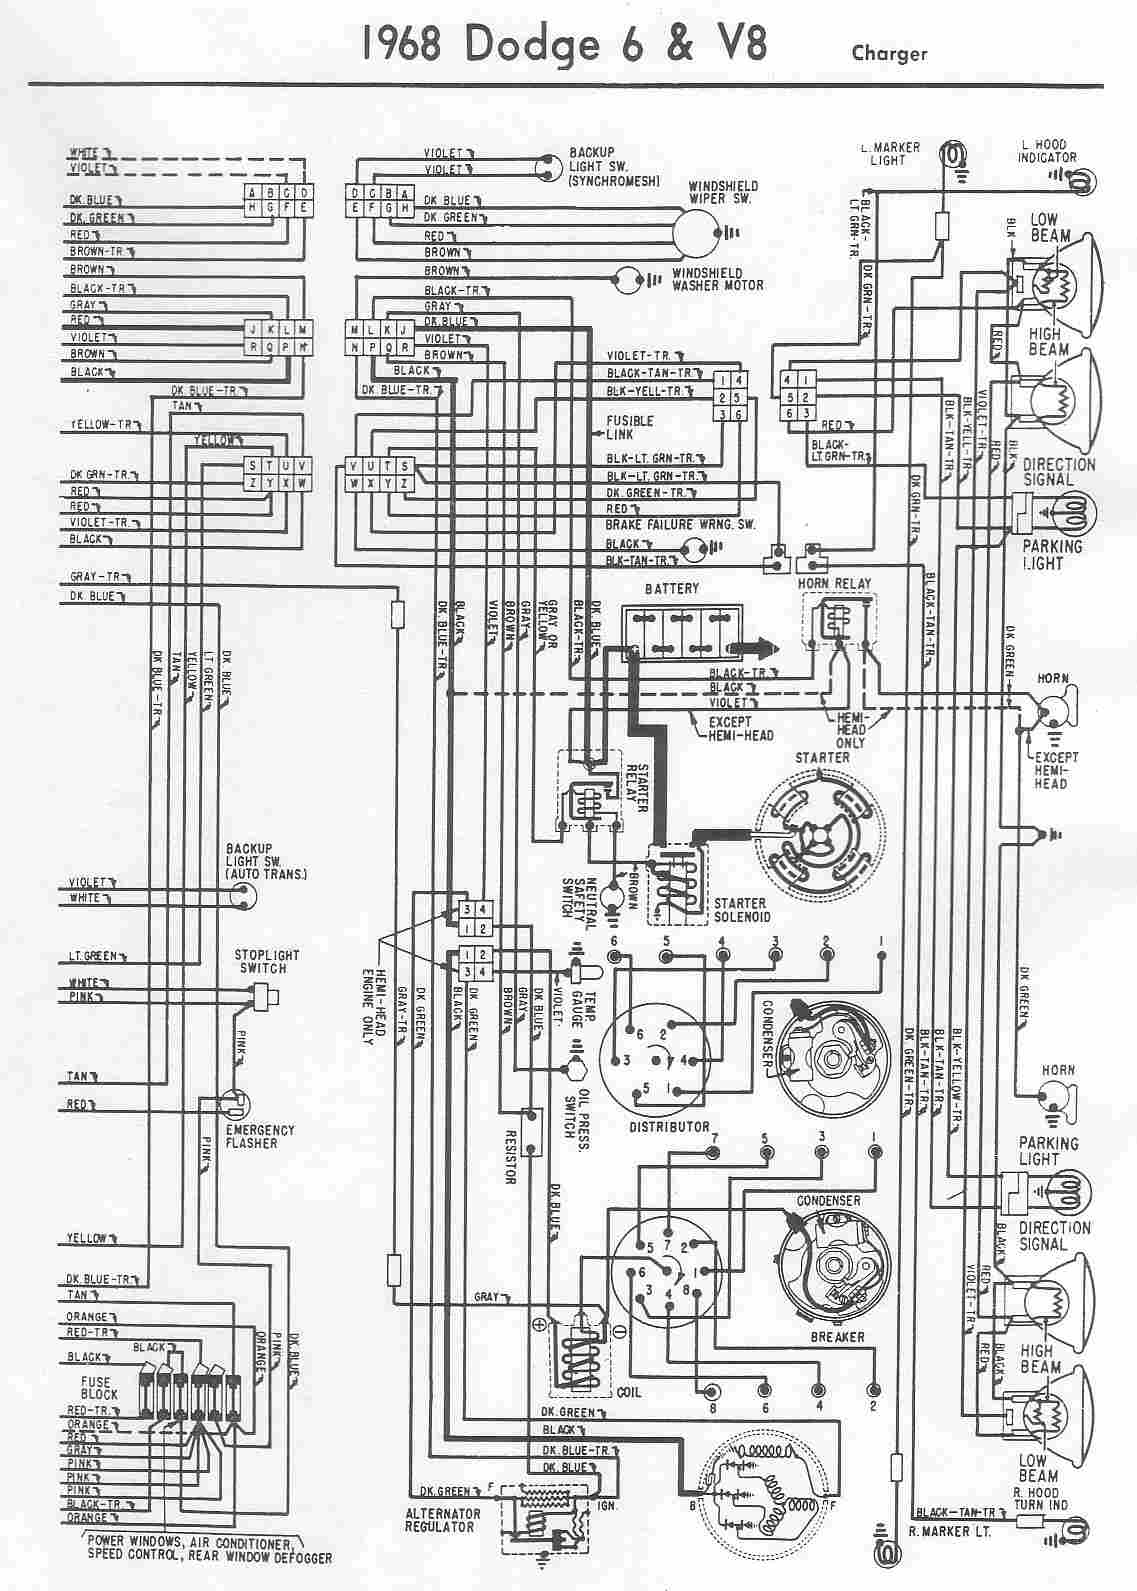 1985 Plymouth Voyager Fuse Box Diagram Electrical Wiring Diagrams Chrysler Lebaron Cadillac Allante